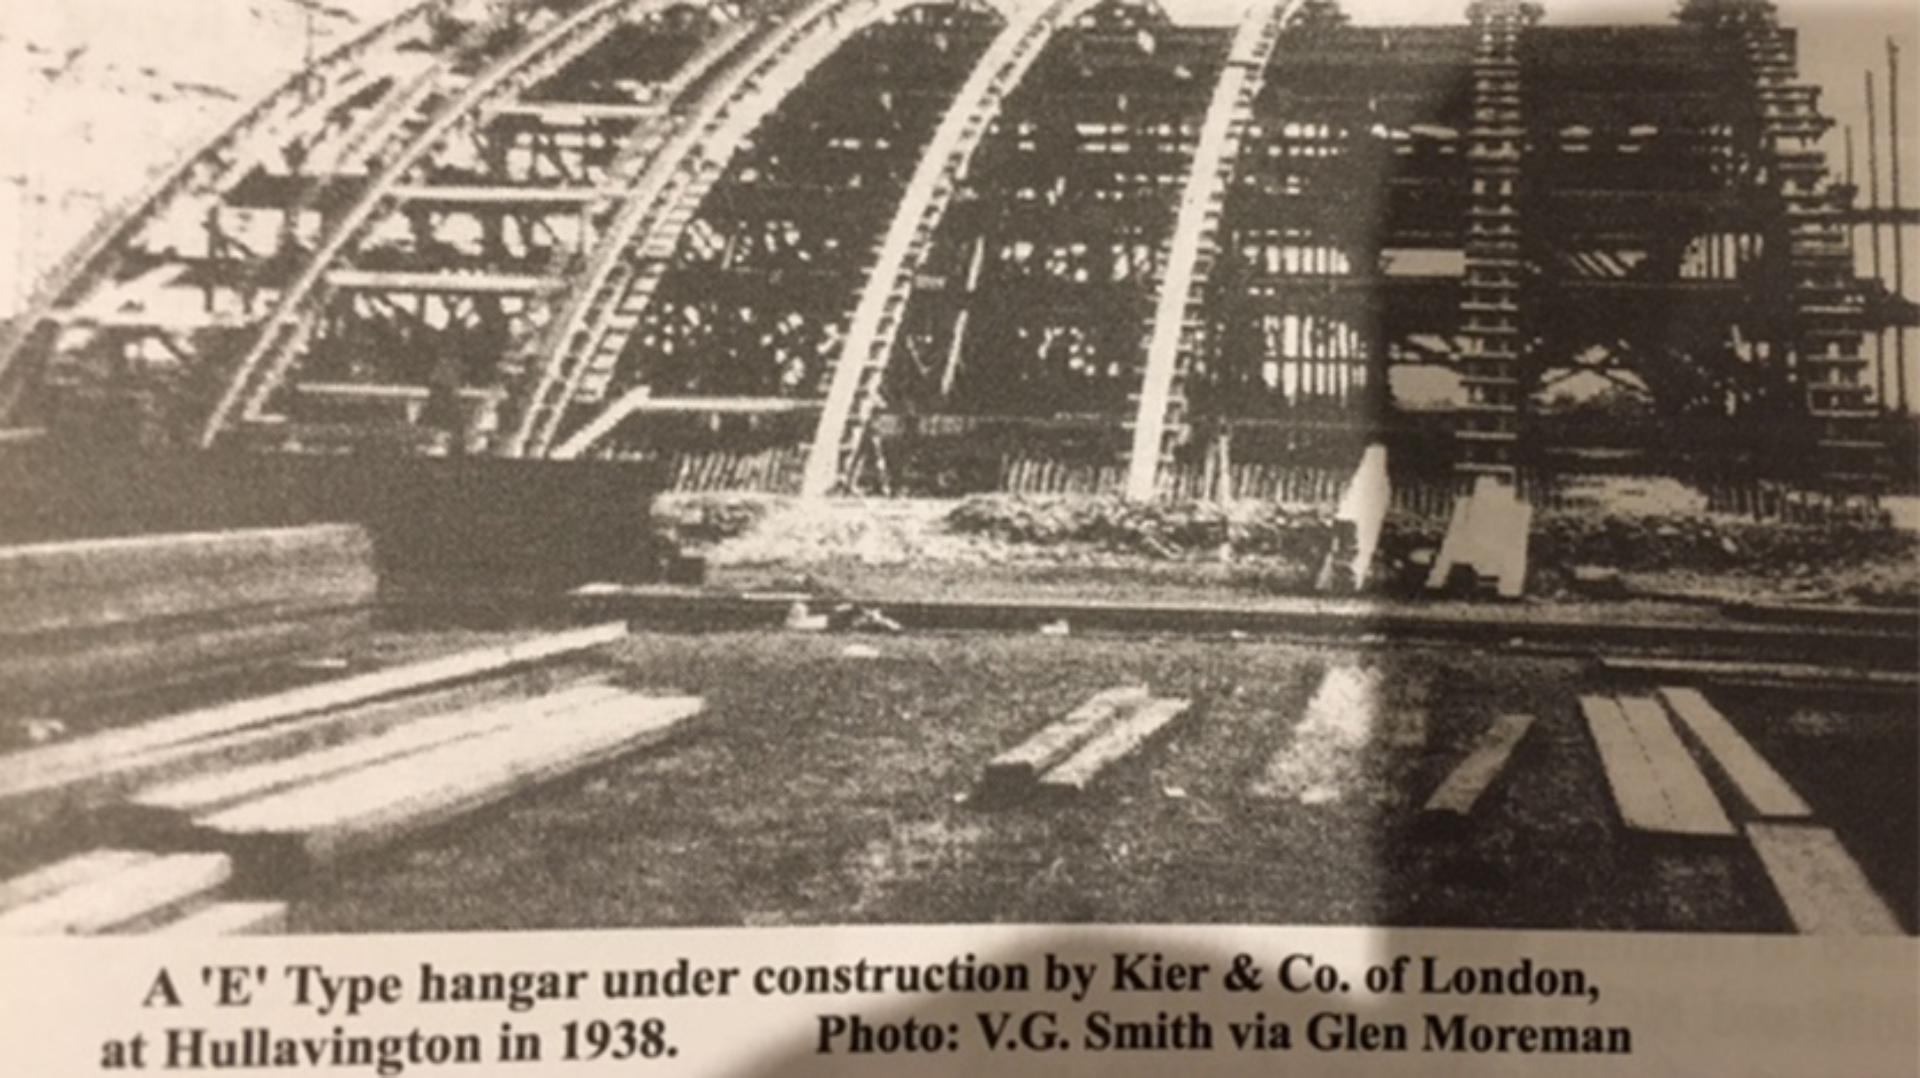 Old photo of Hullavington airfield under construction in 1938